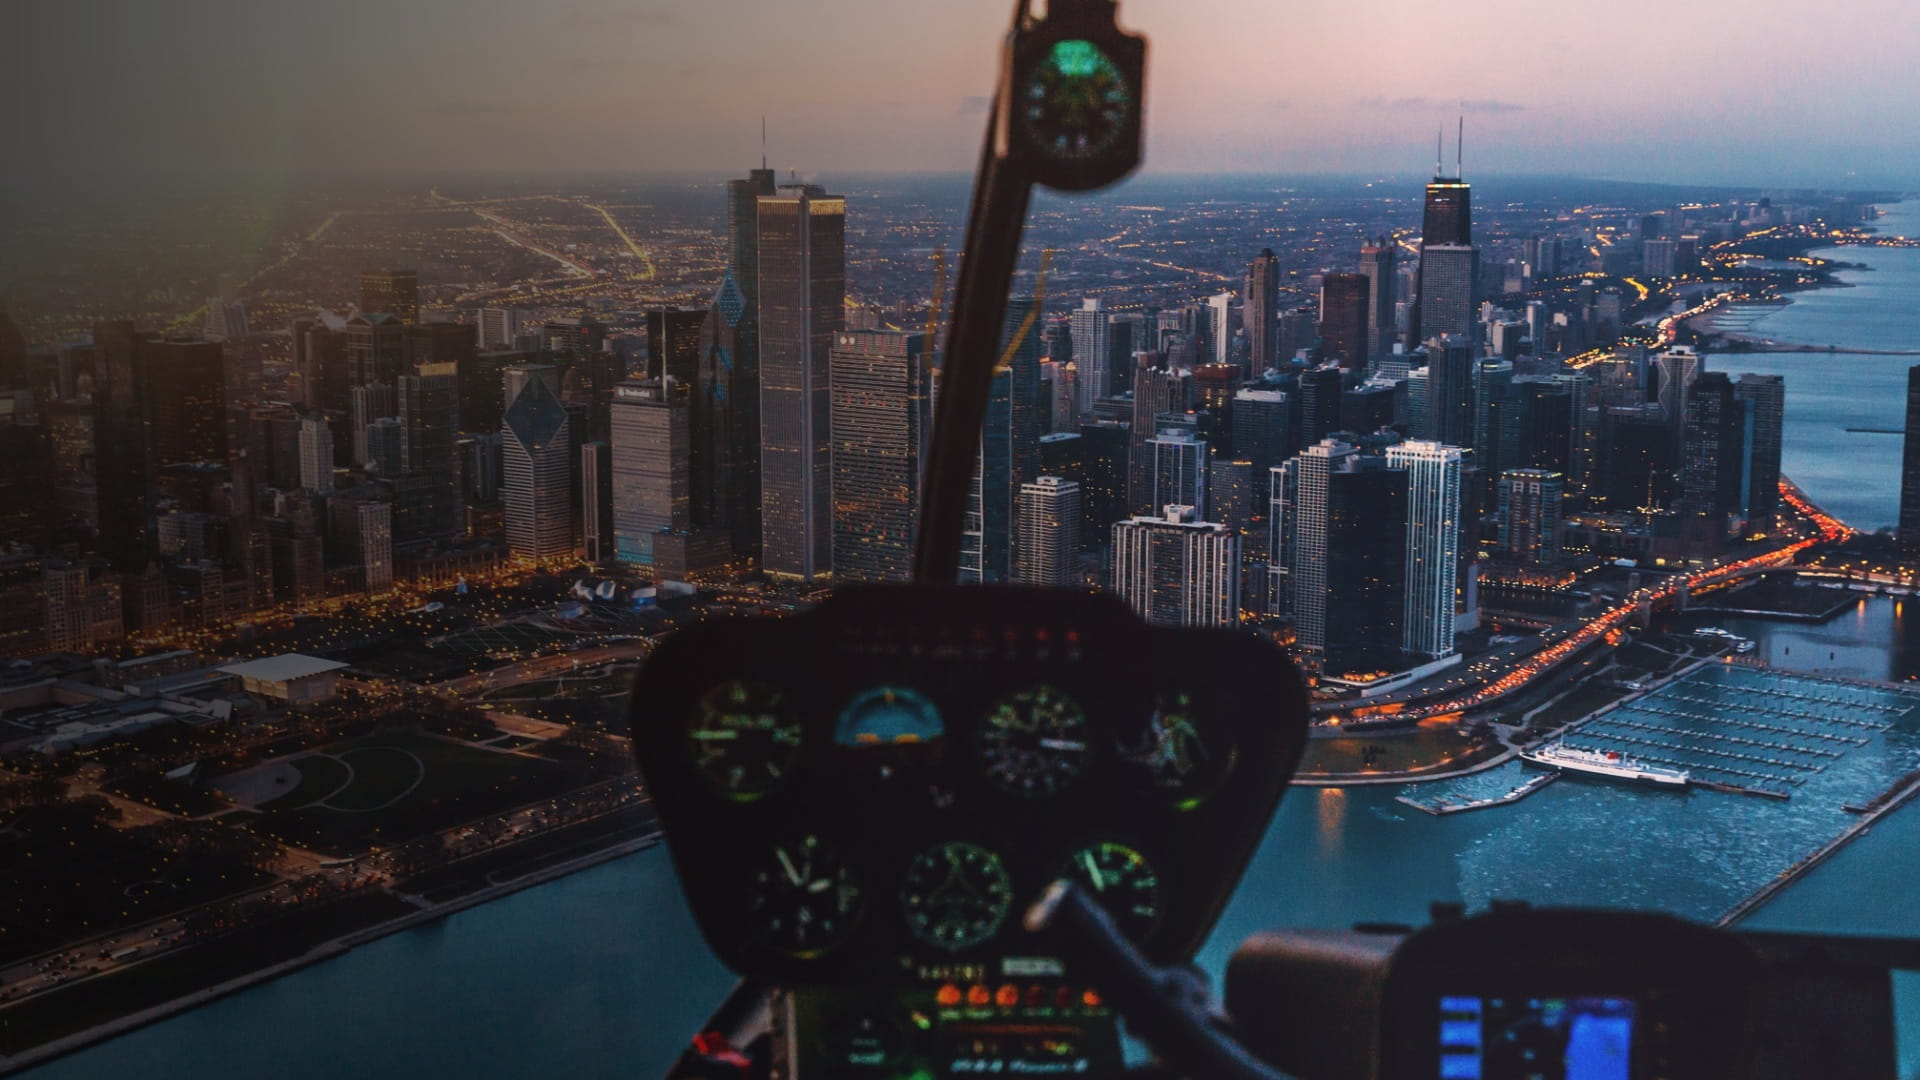 View of city from within a helicopter